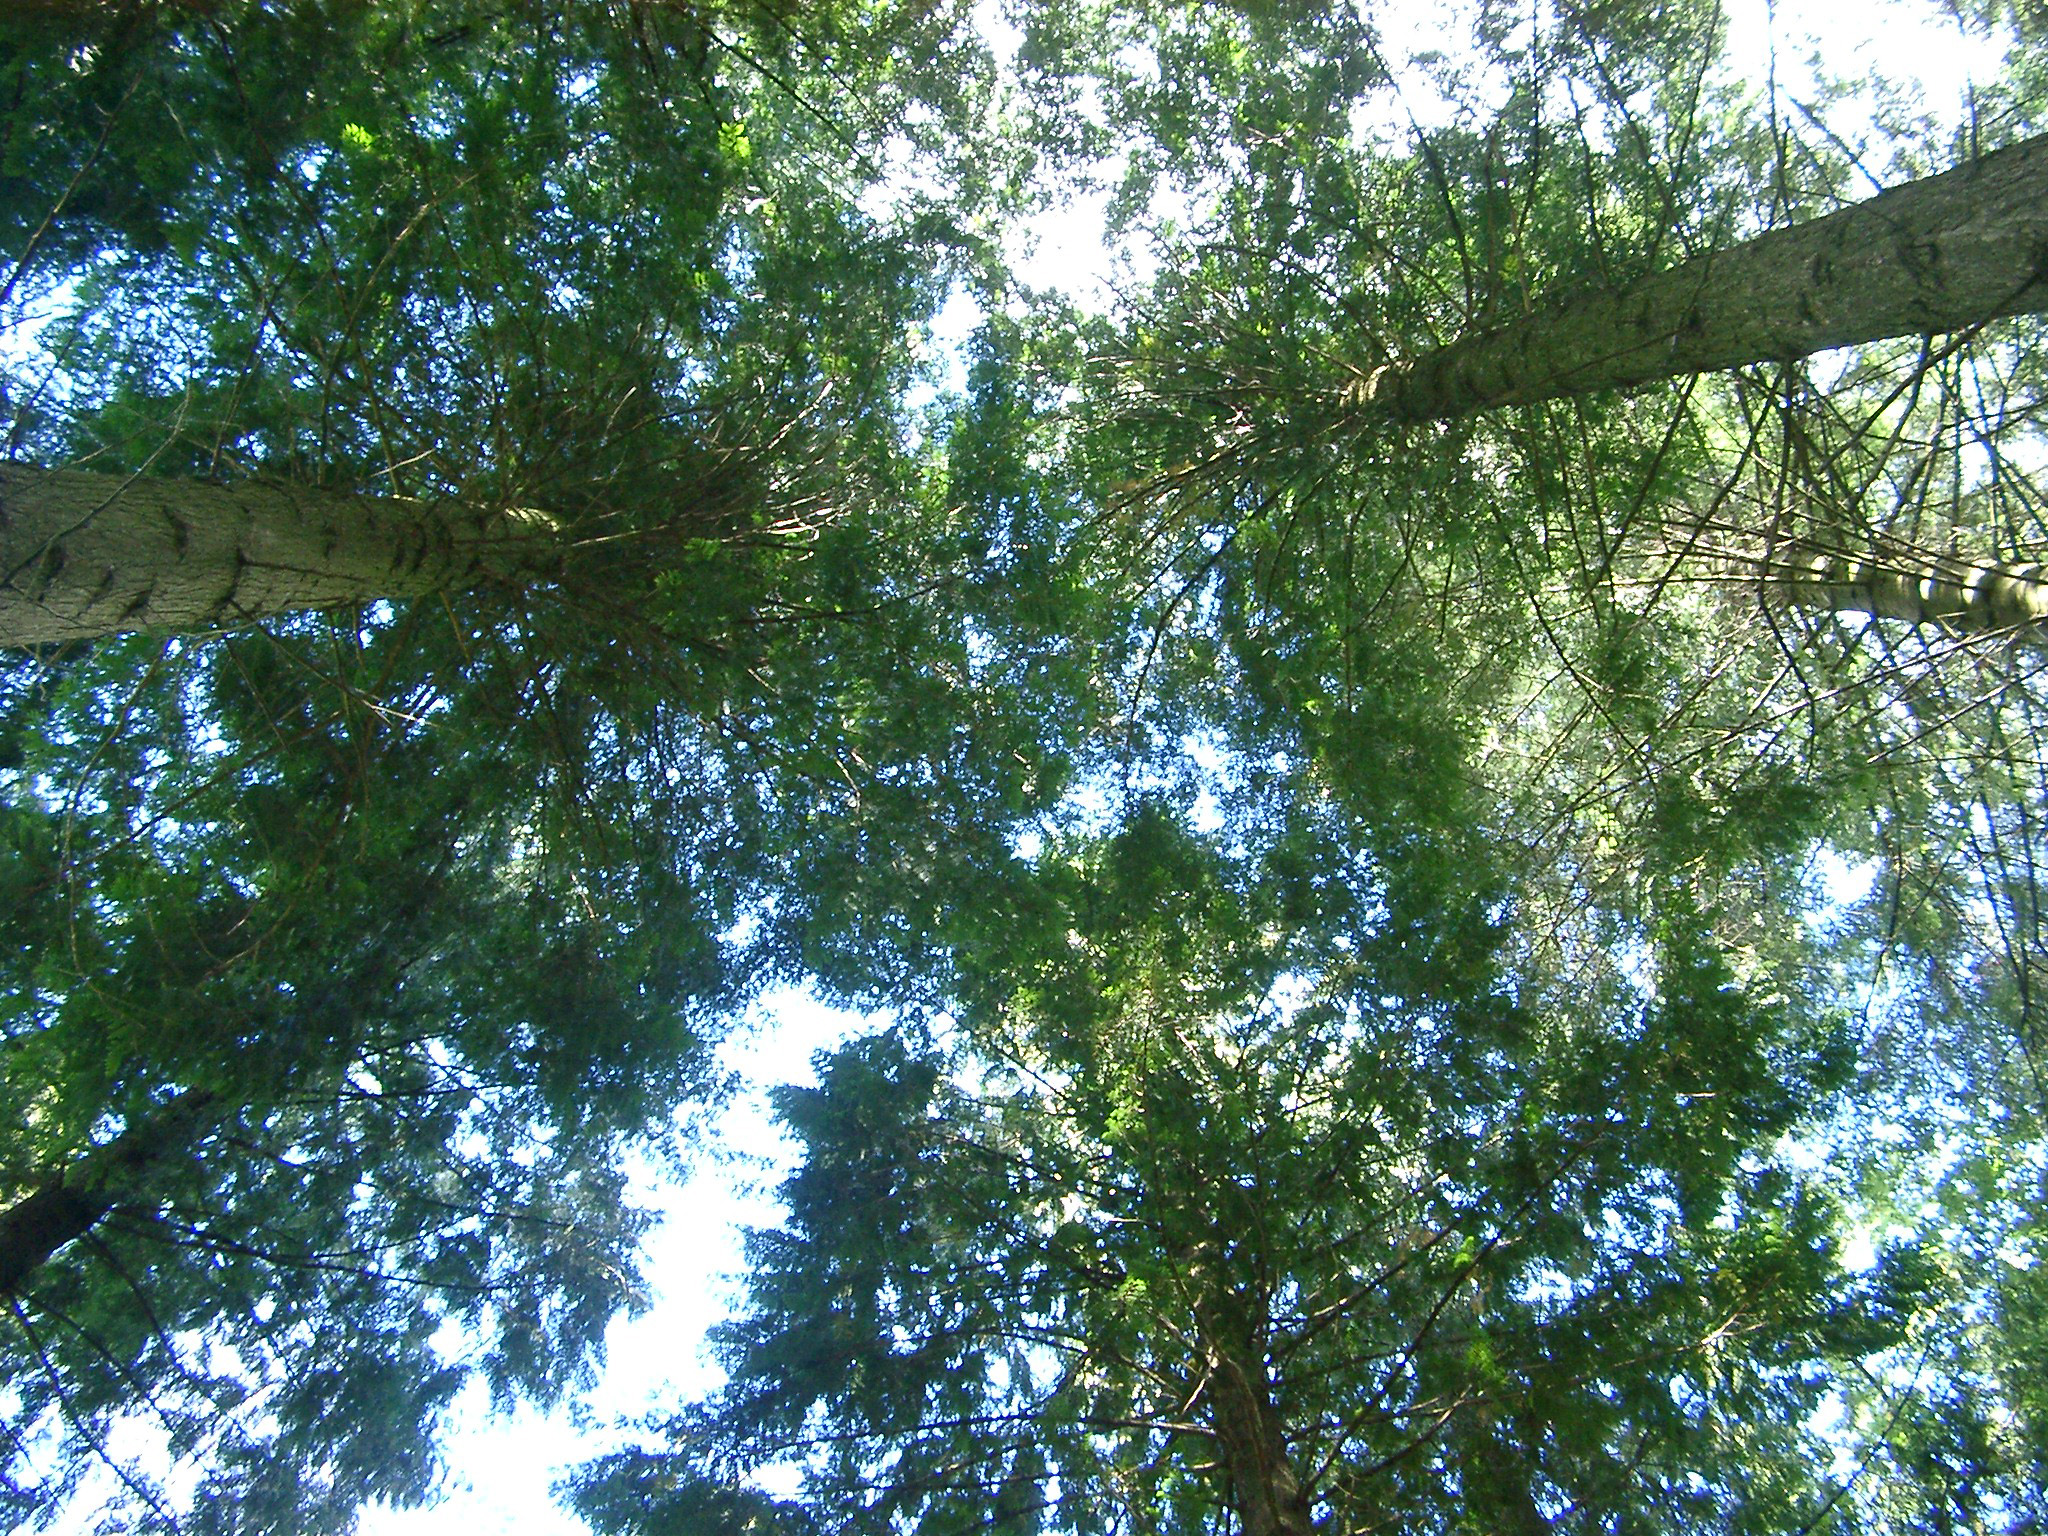 Looking up into the foliage of a stand of tall leafy green trees in woodland against a blue sky